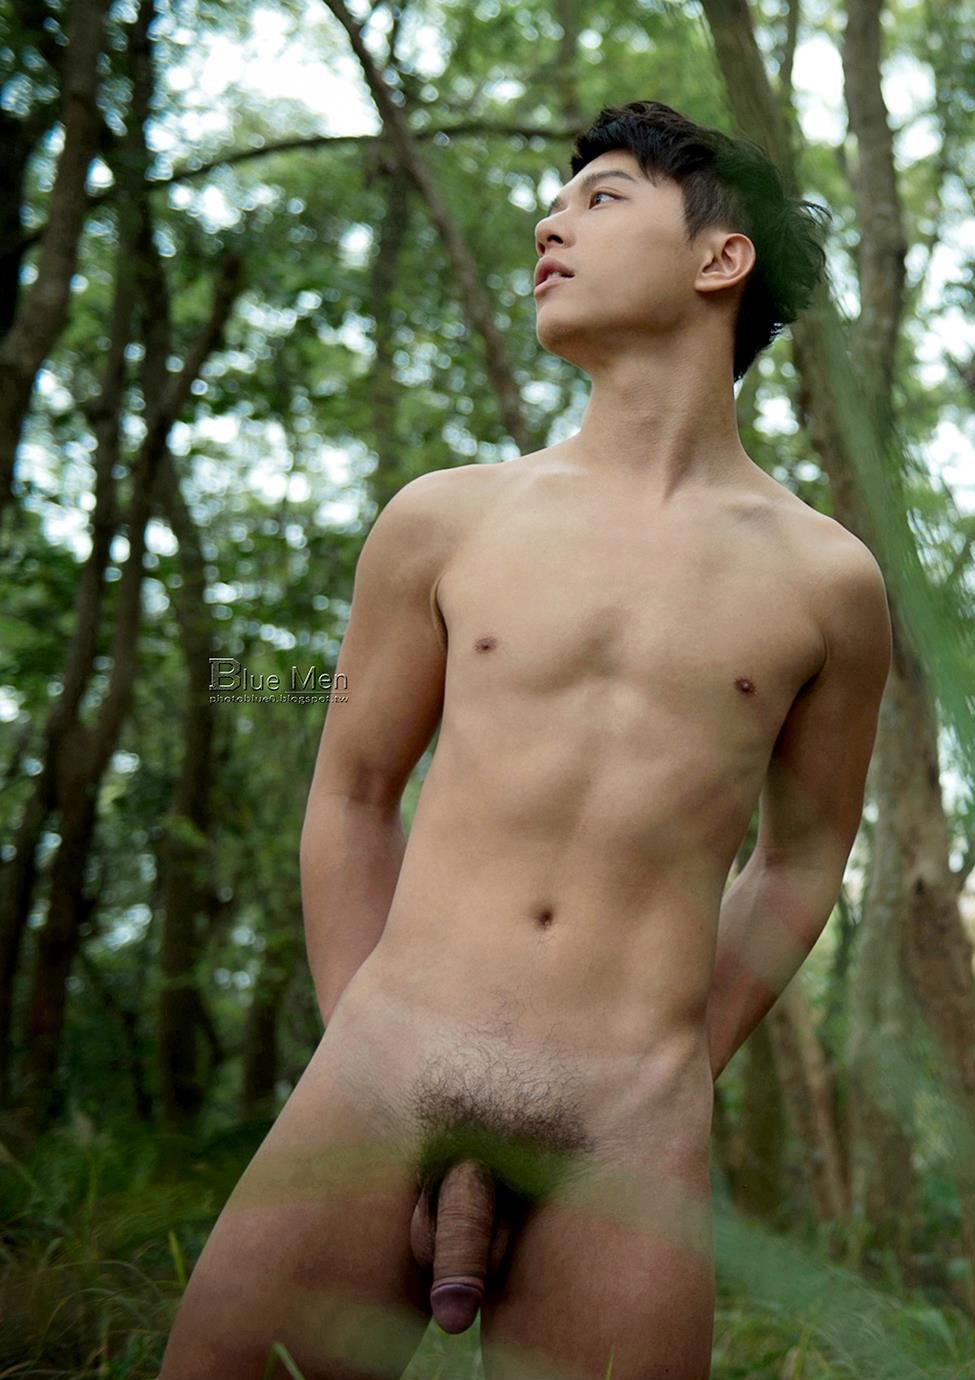 Amateur filipino male naked photo cowboy 5